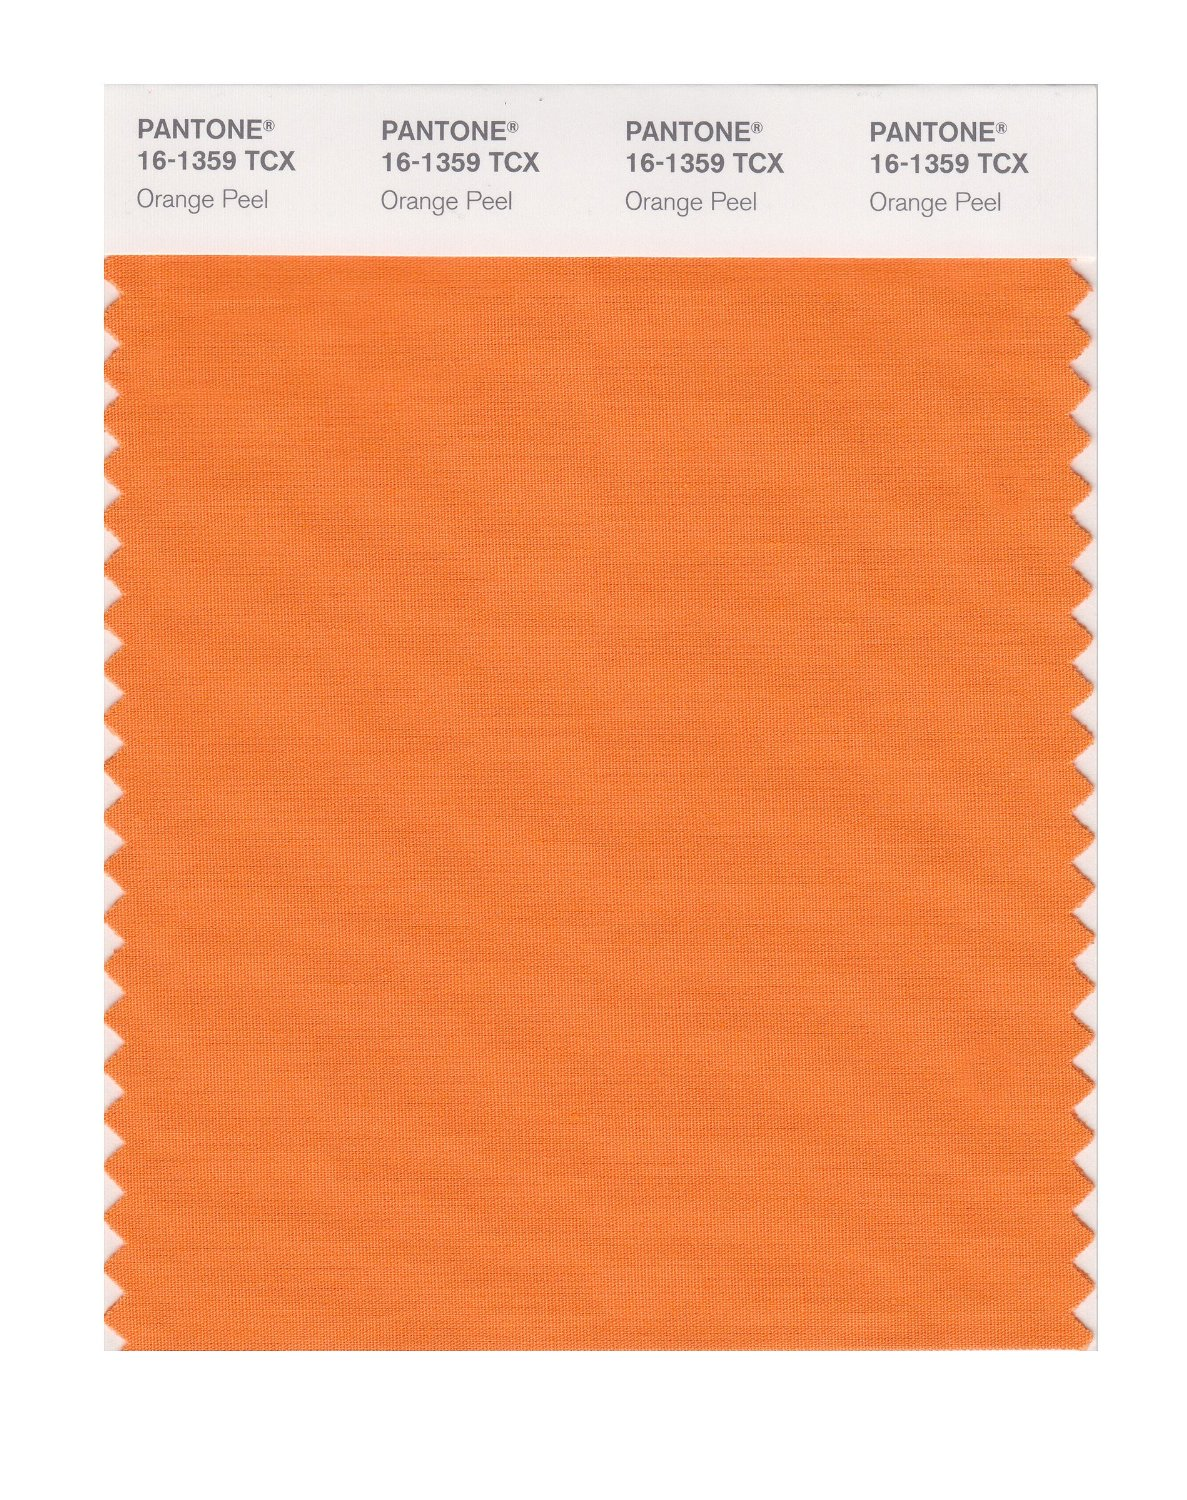 Pantone Smart Swatch 16-1359 Orange Peel